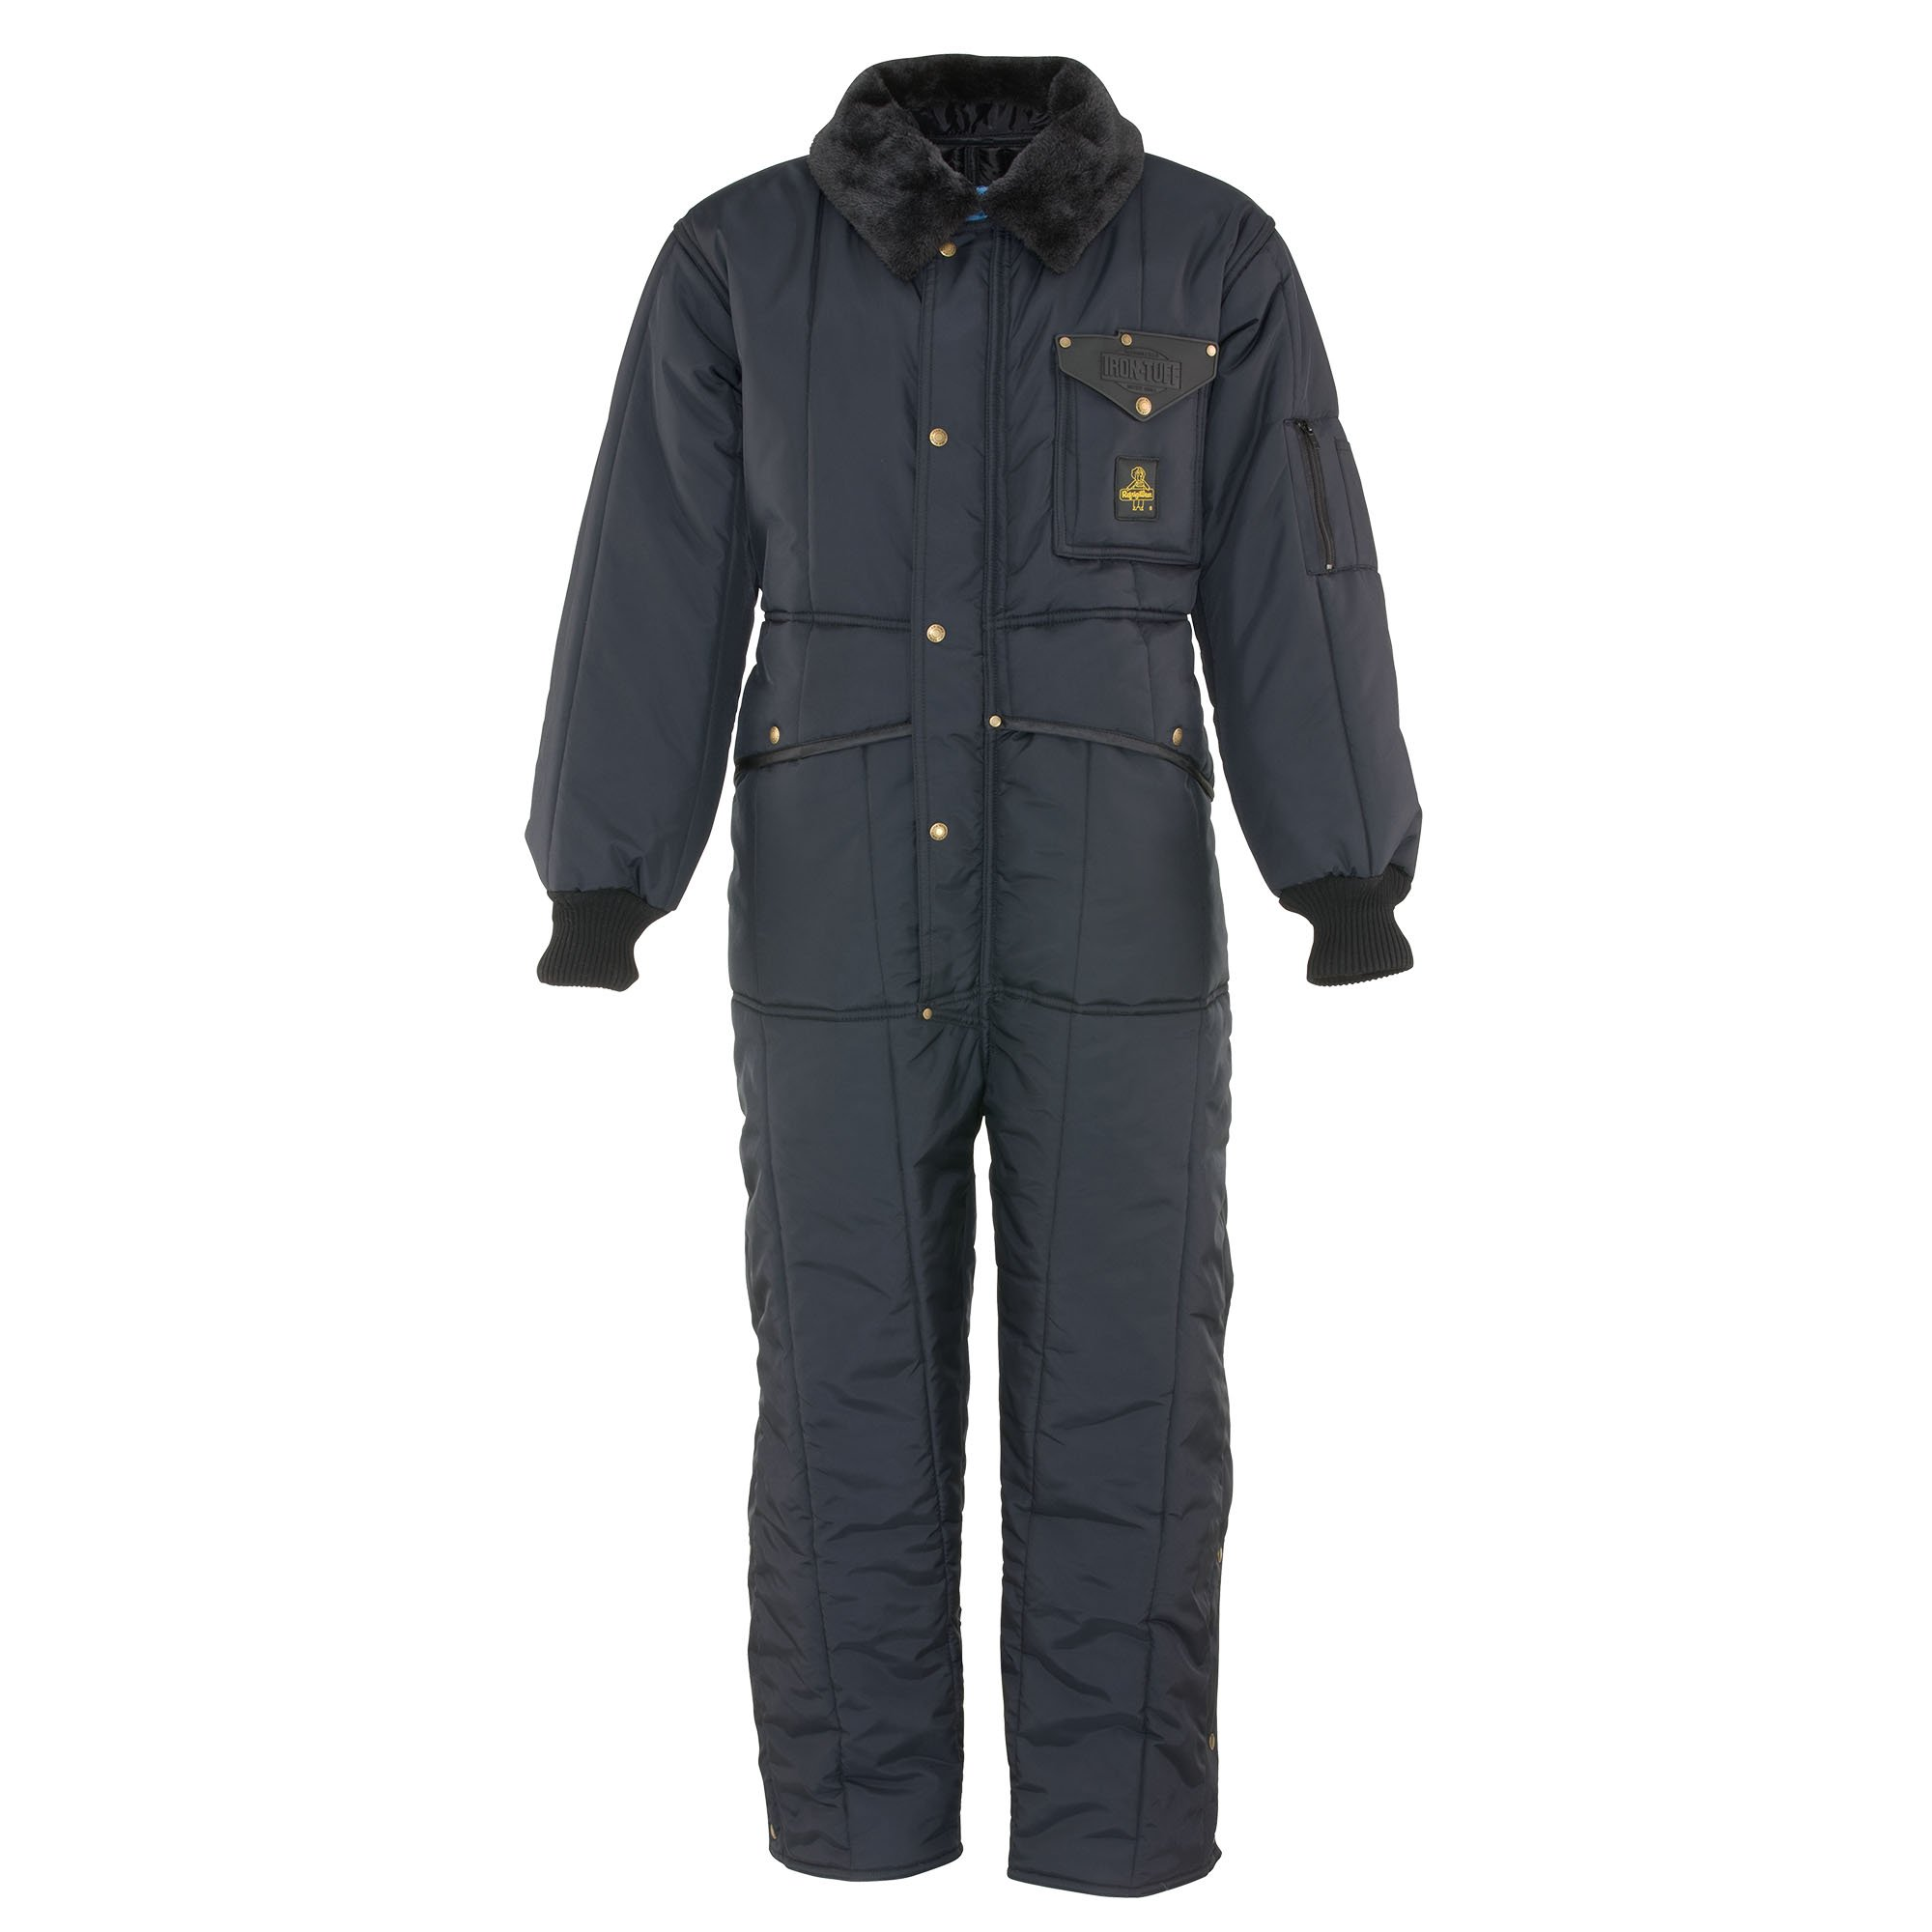 RefrigiWear Men's Iron-Tuff Insulated Coveralls -50 Extreme Cold Suit (Navy Blue, XL)